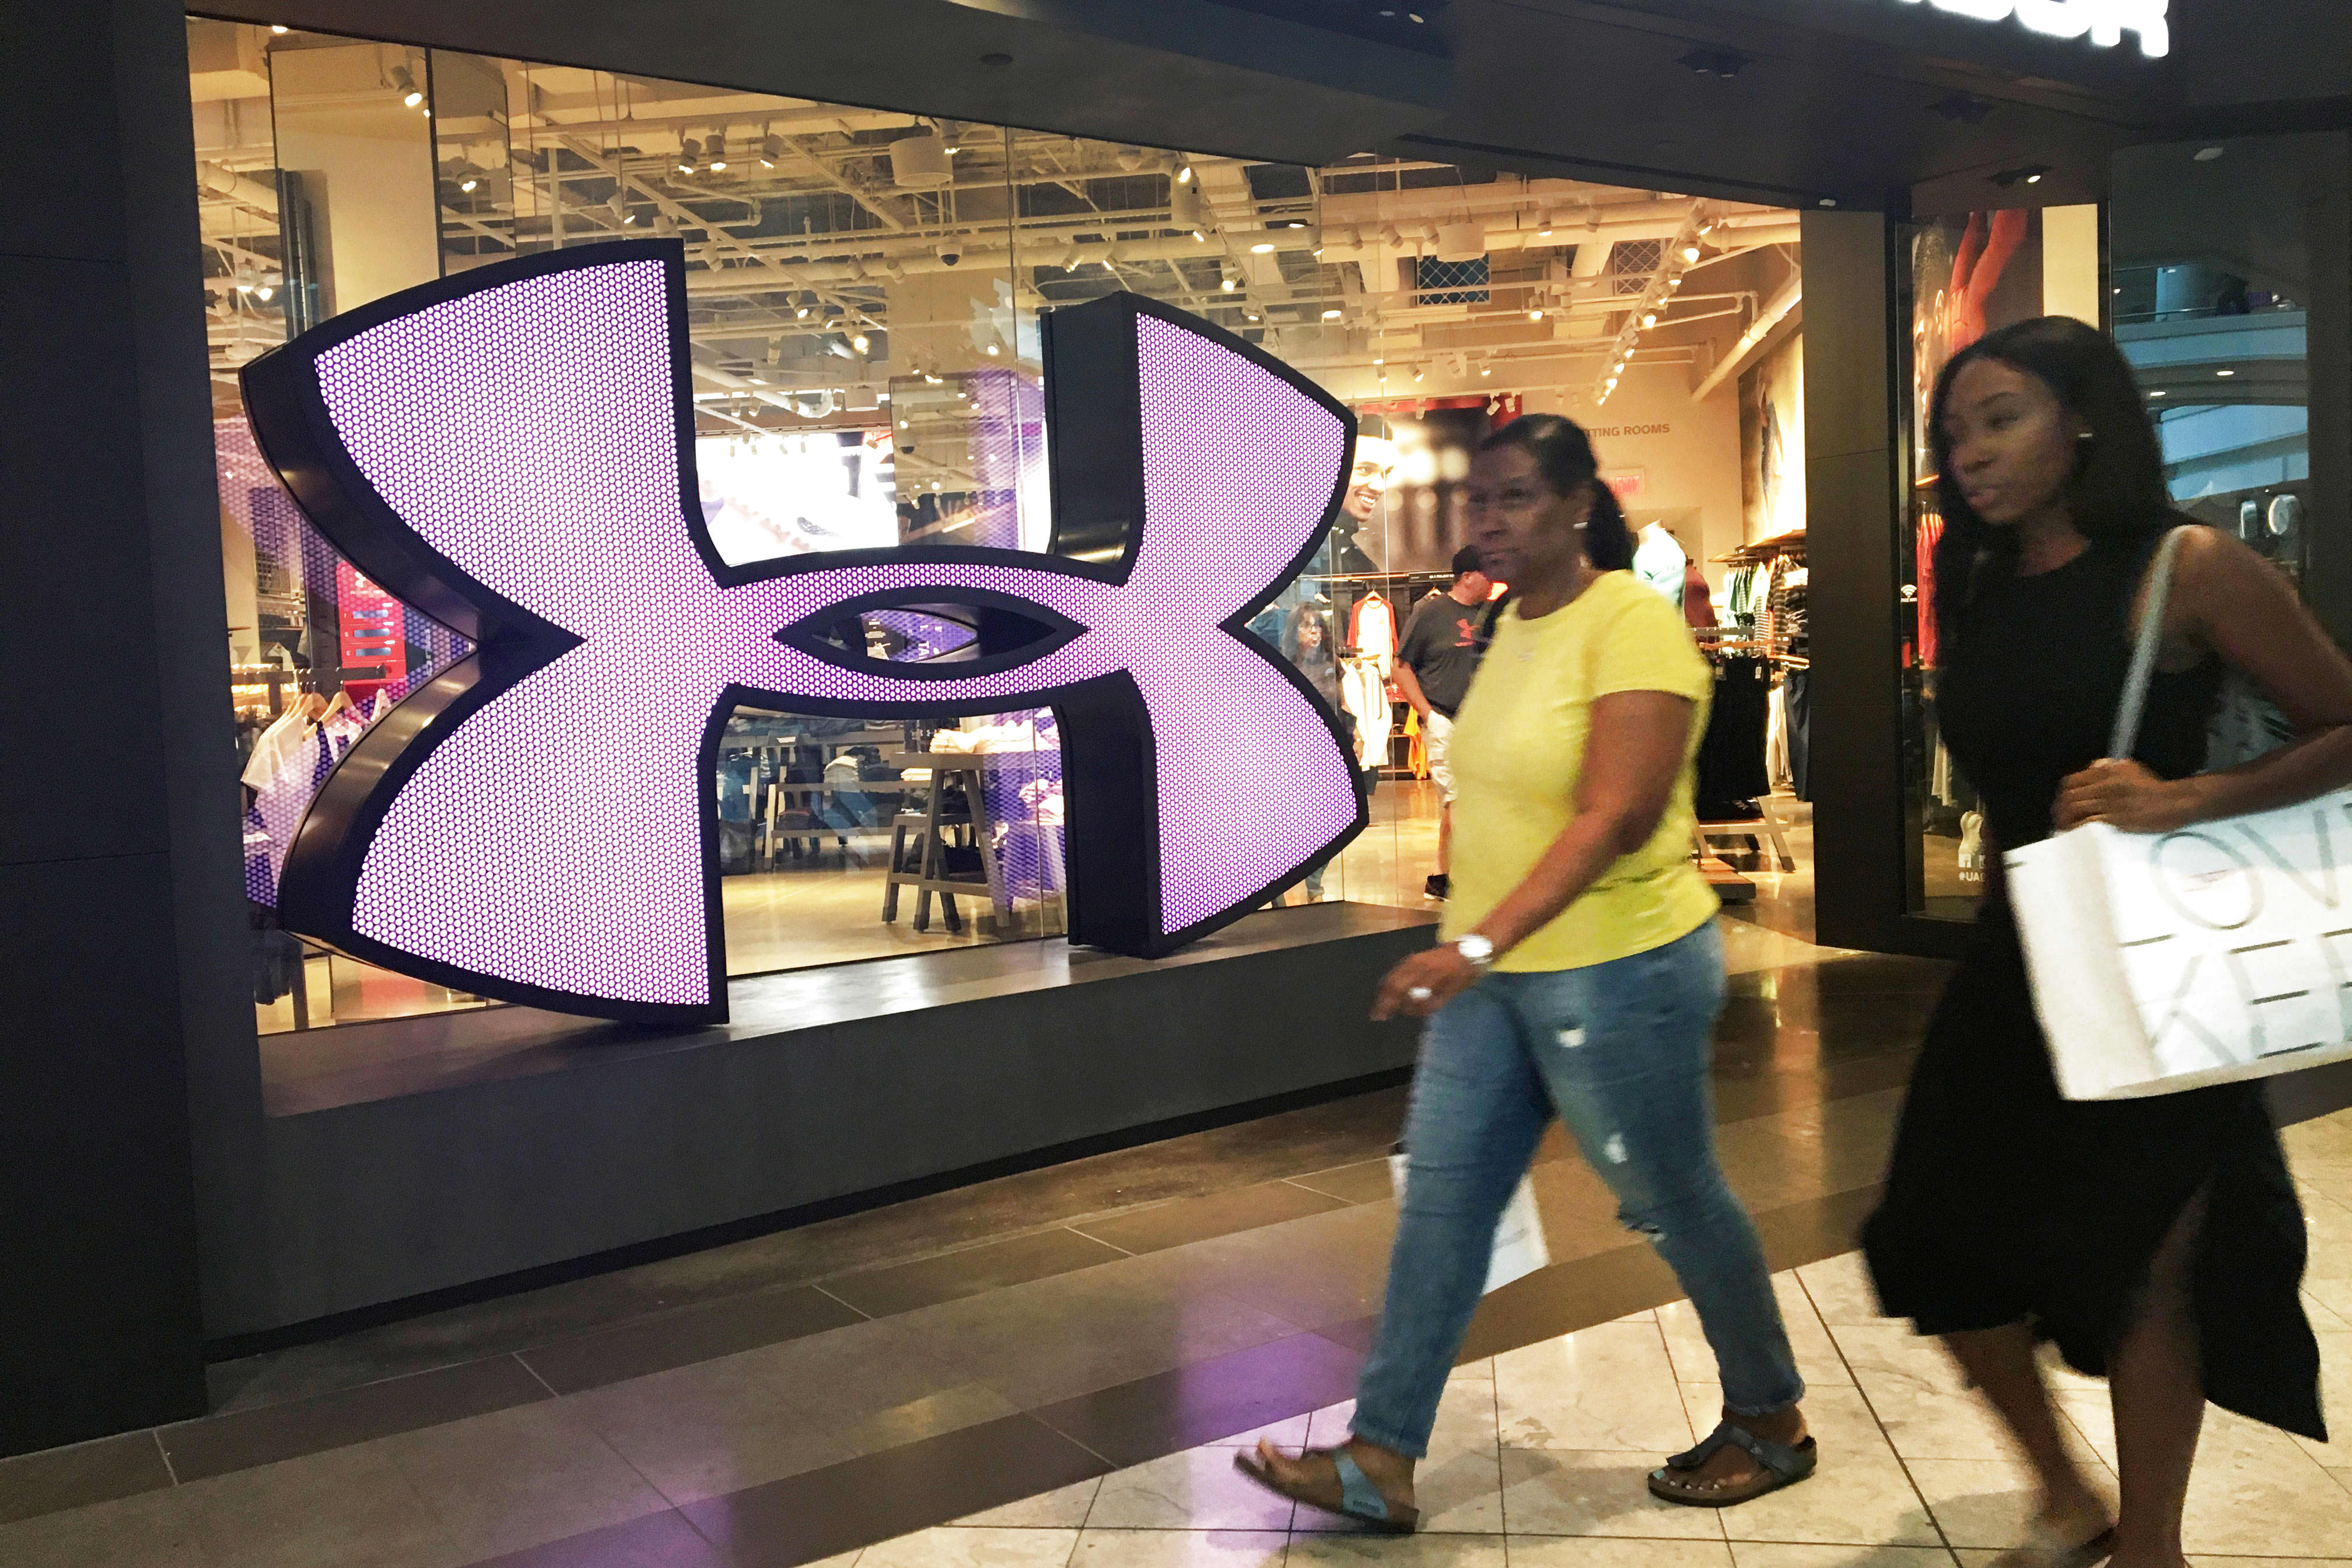 Stocks making the biggest moves midday: Under Armour, T-Mobile, Sprint, Facebook and more